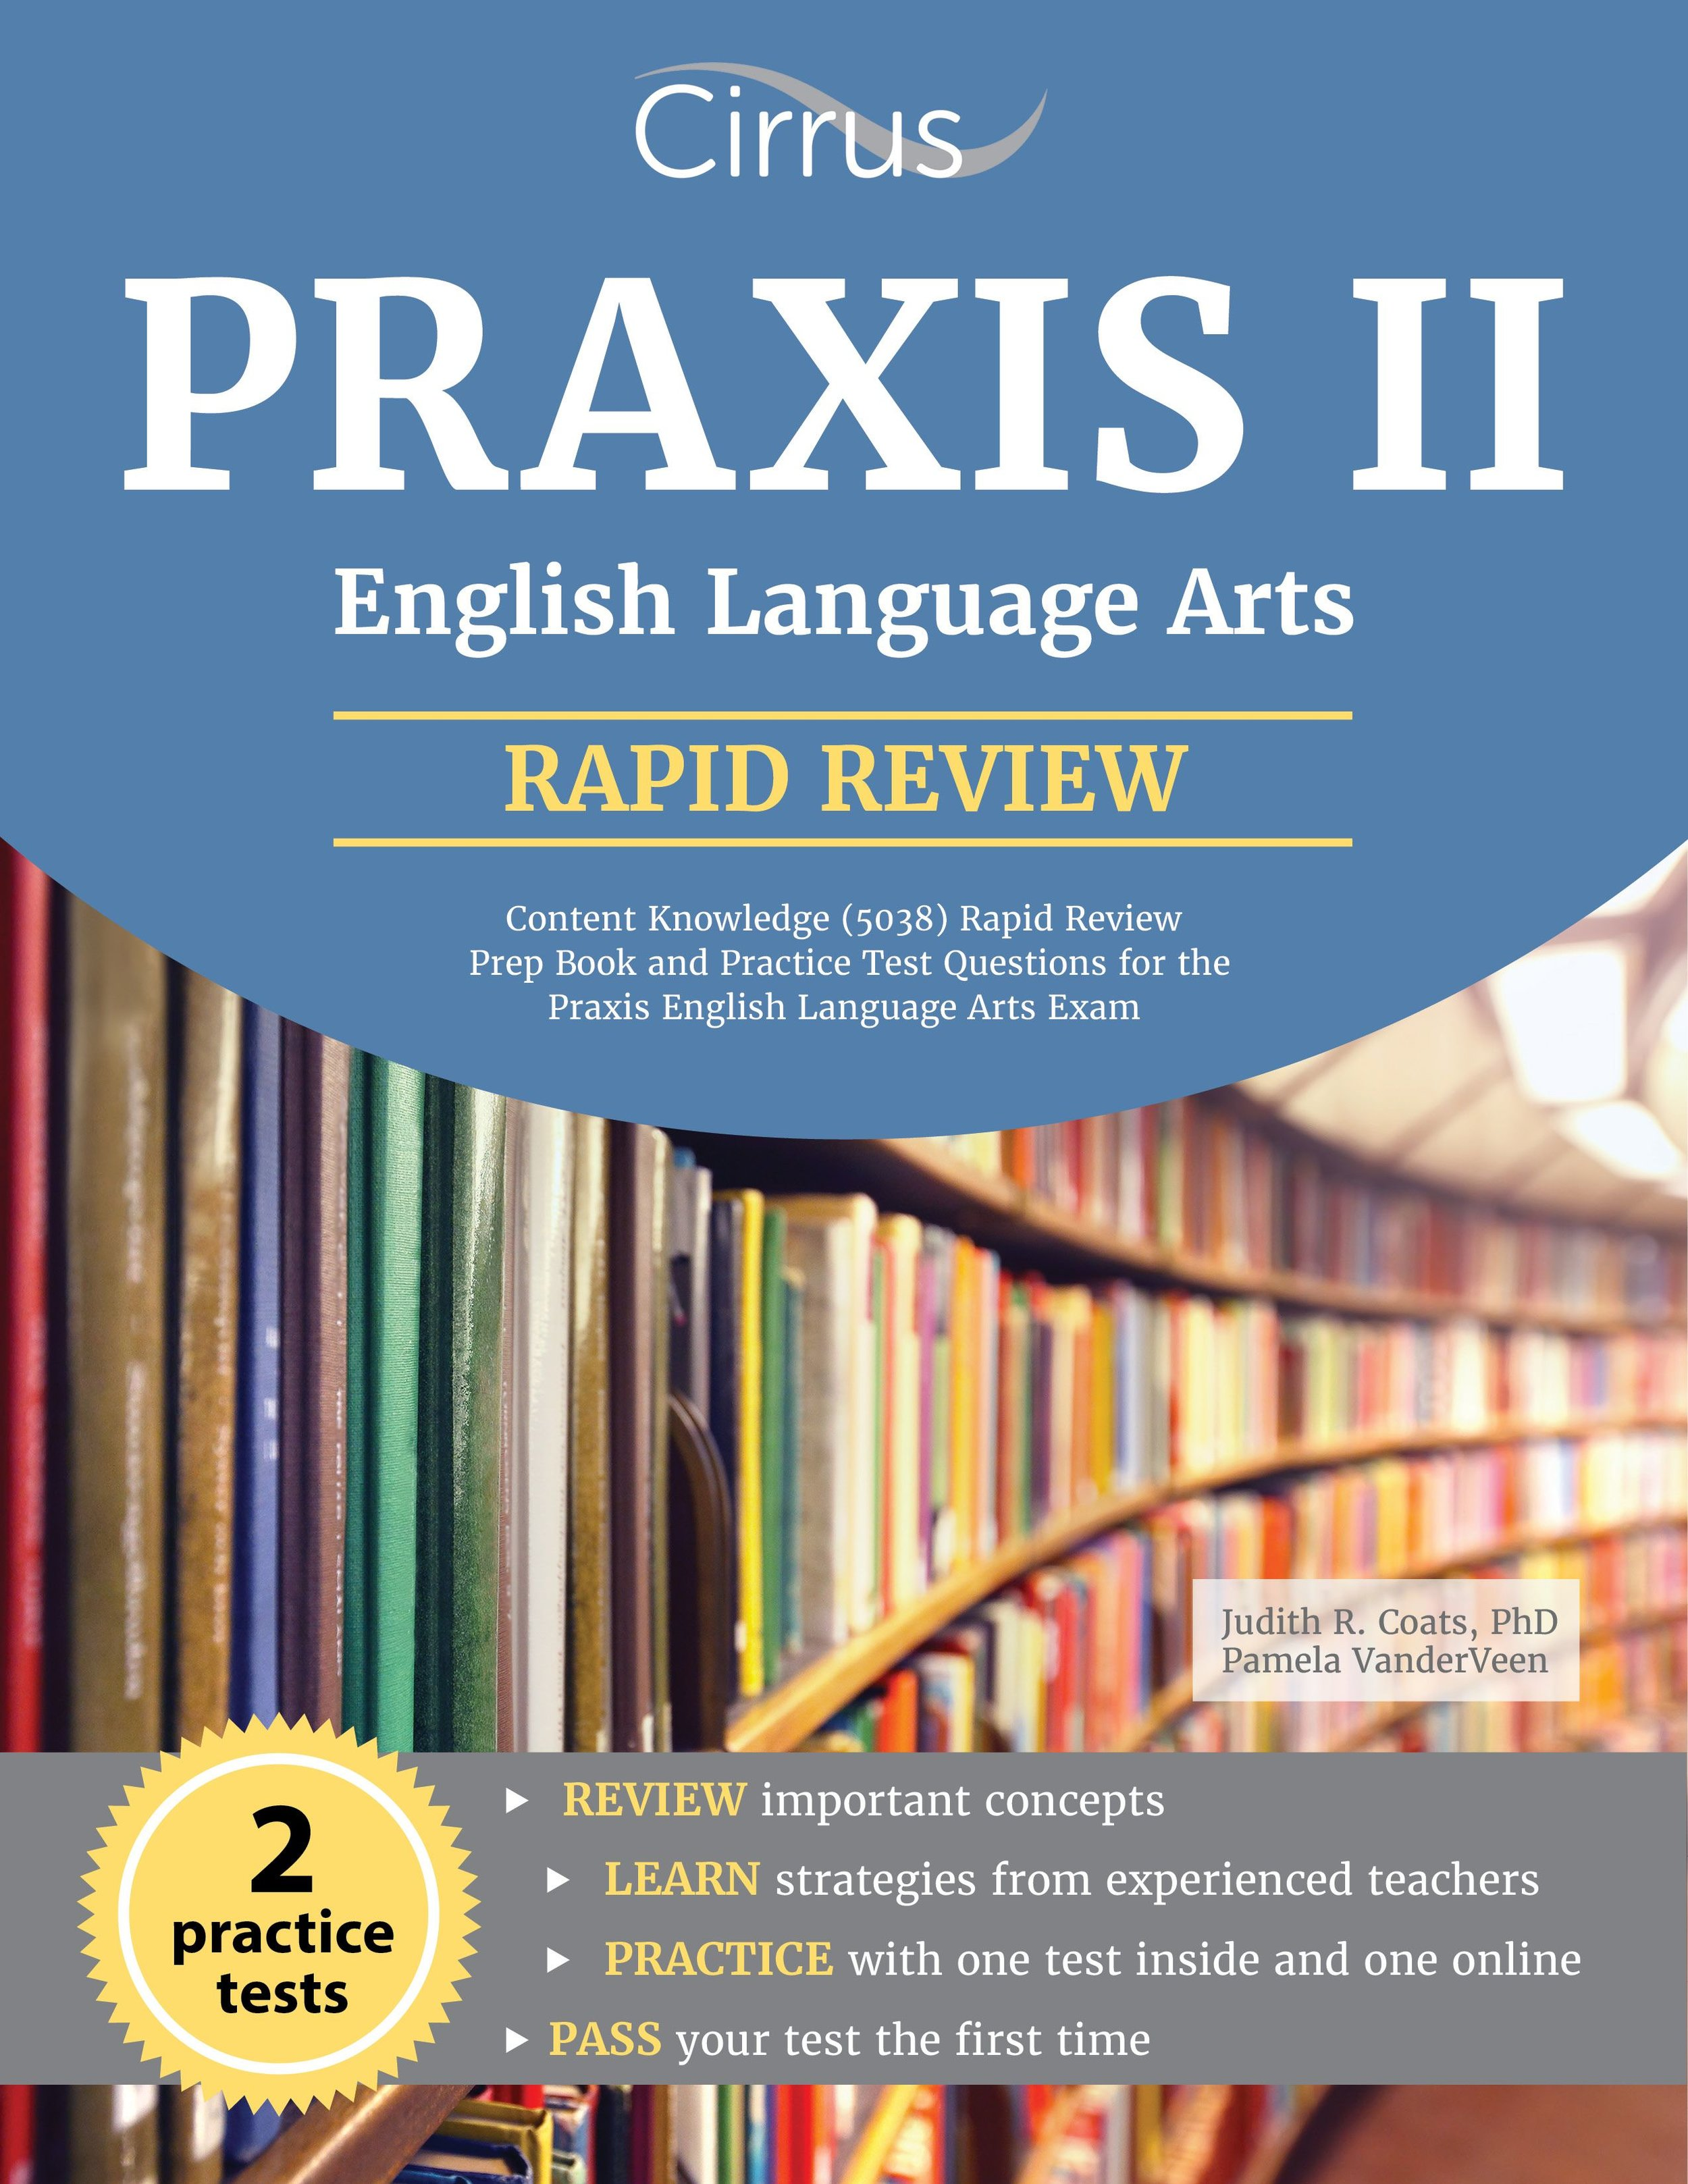 Praxis II English Language Arts ELA 5038 Rapid Review Study Guide Content Knowledge and Practice Test Questions